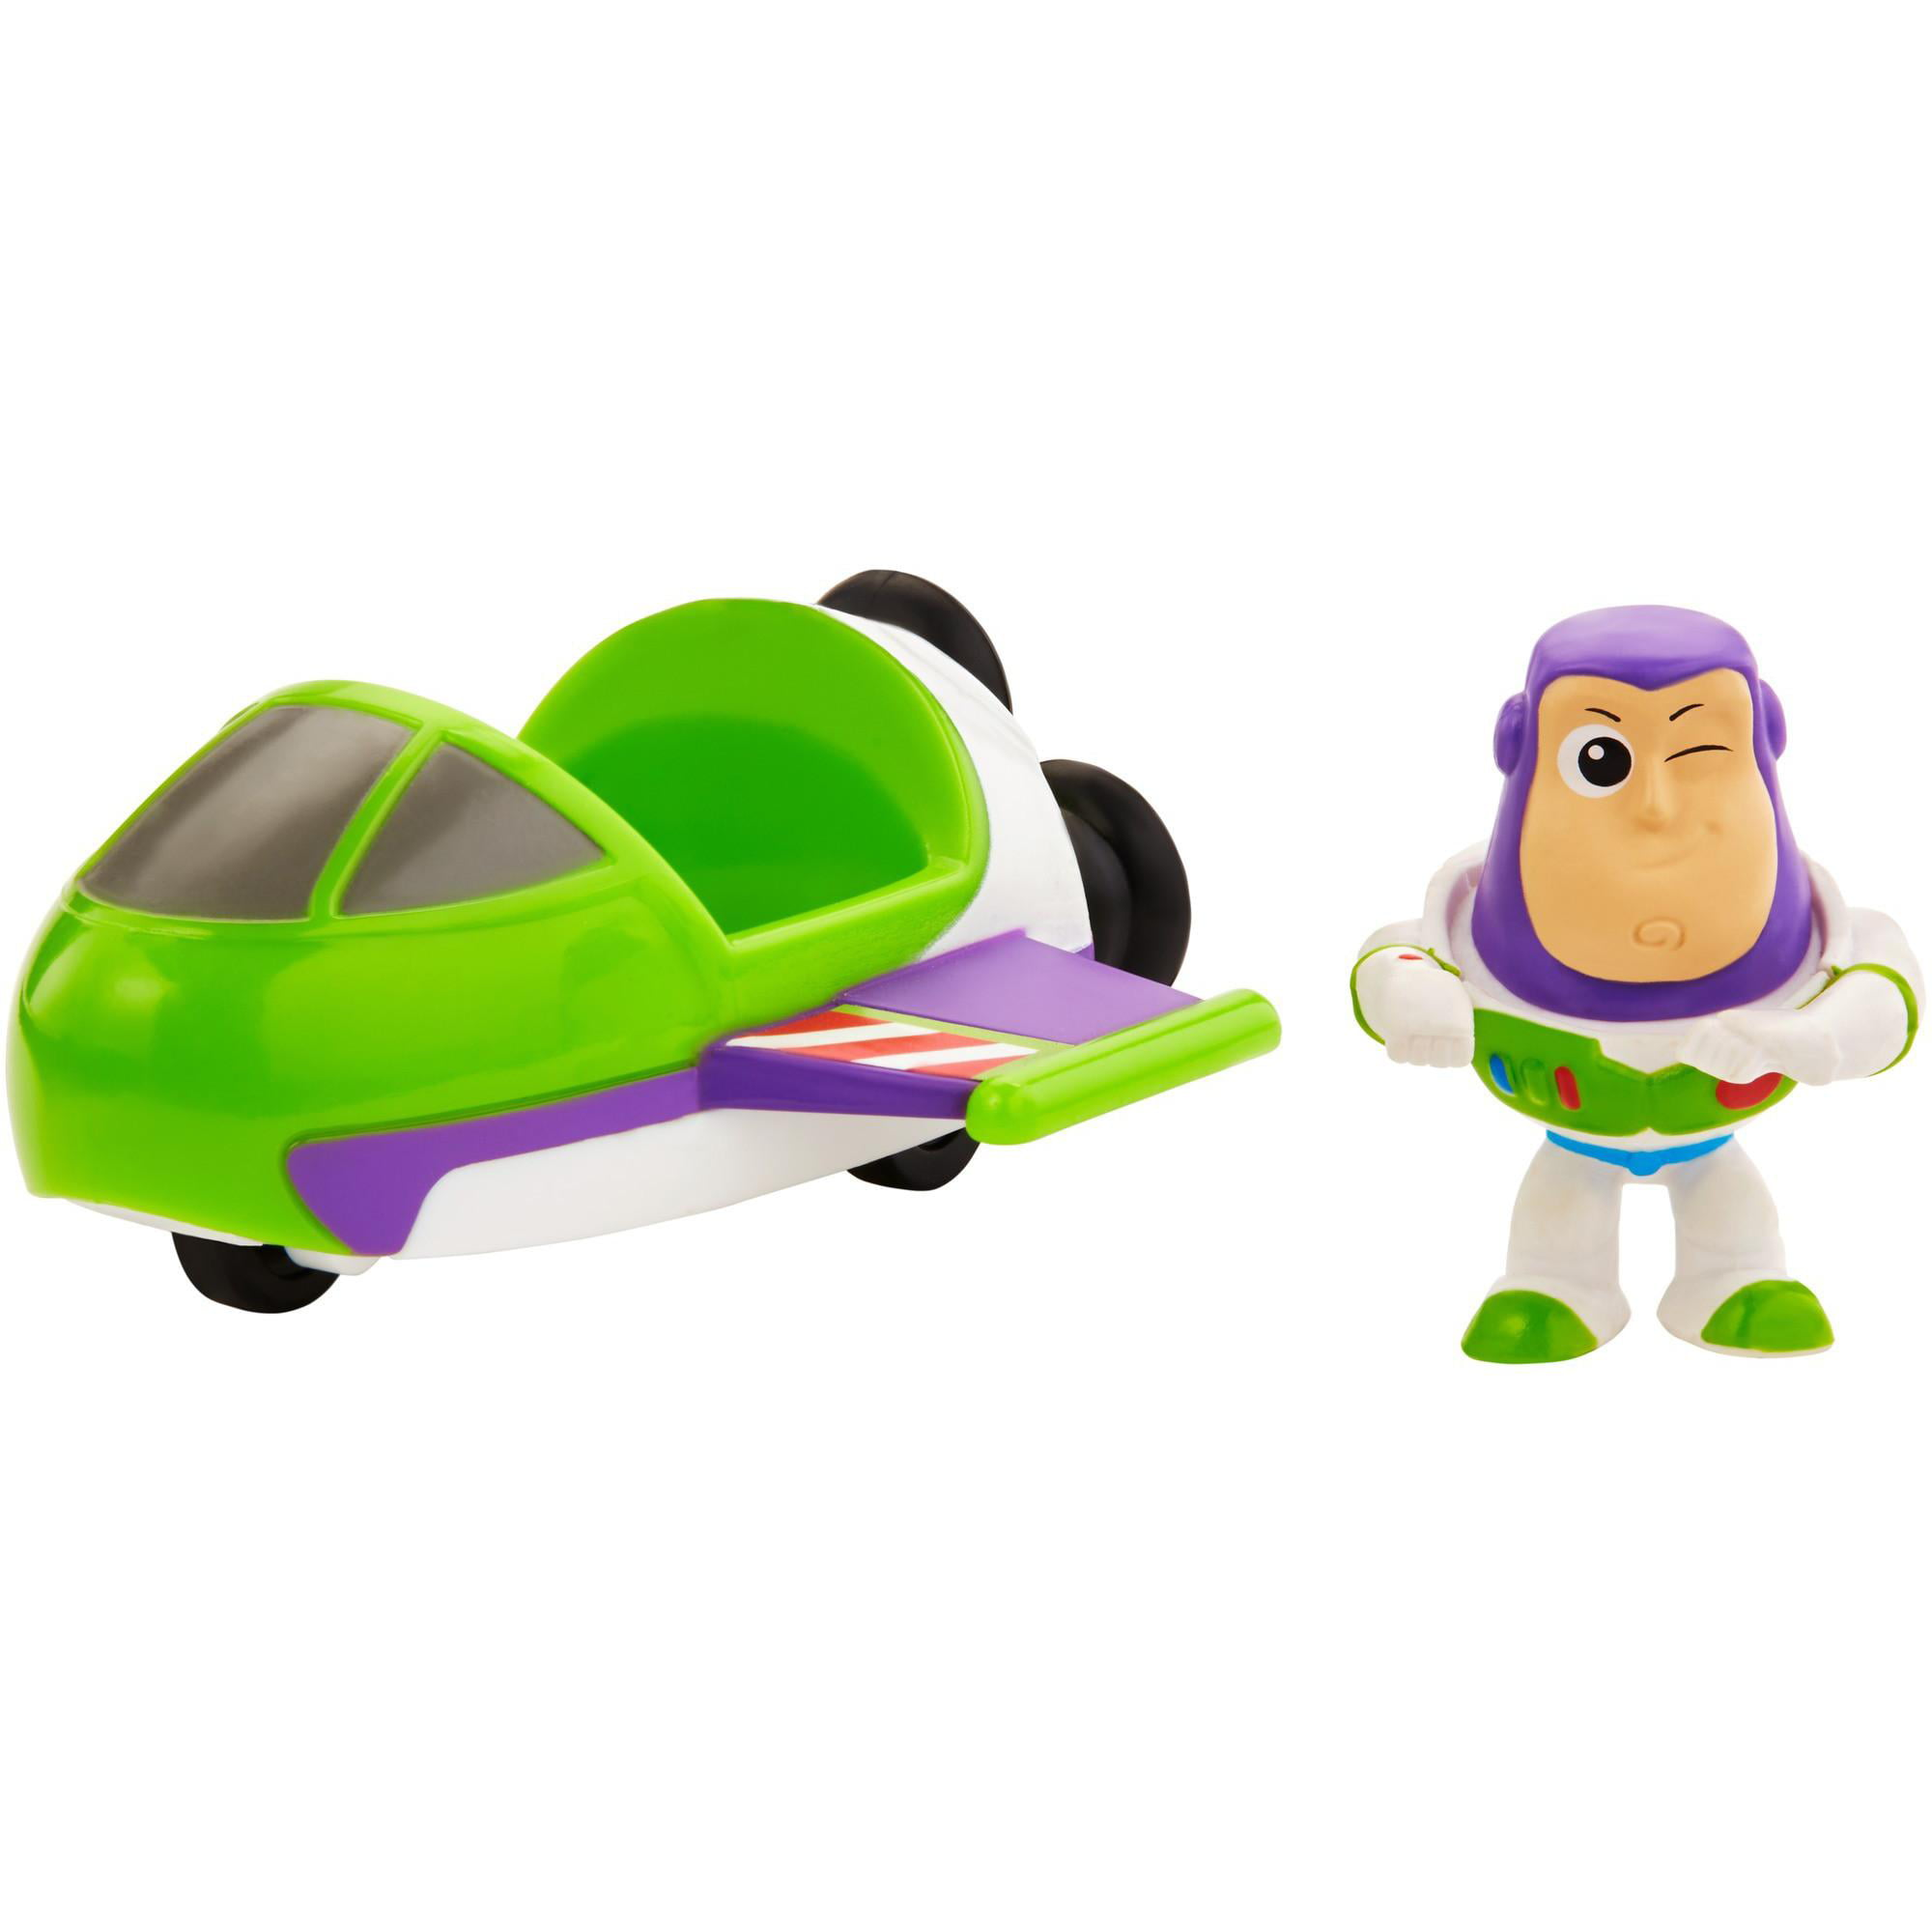 Disney Pixar Toy Story Mini Buzz Lightyear and Spaceship Set